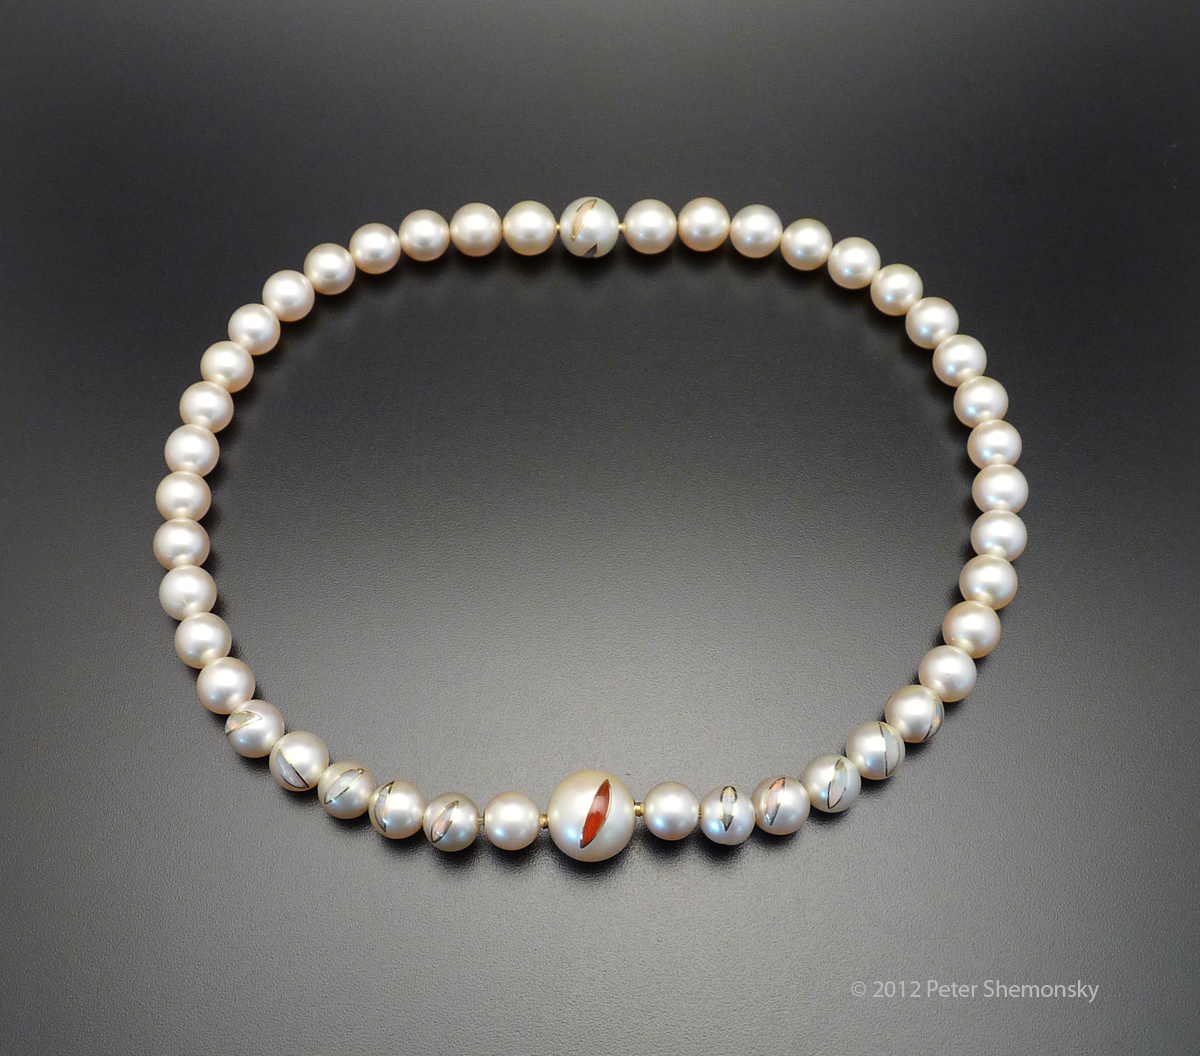 necklace la louisiana black fine s by opals jewelry fullsizeoutput category elegant product archives rick pearls opal pearl